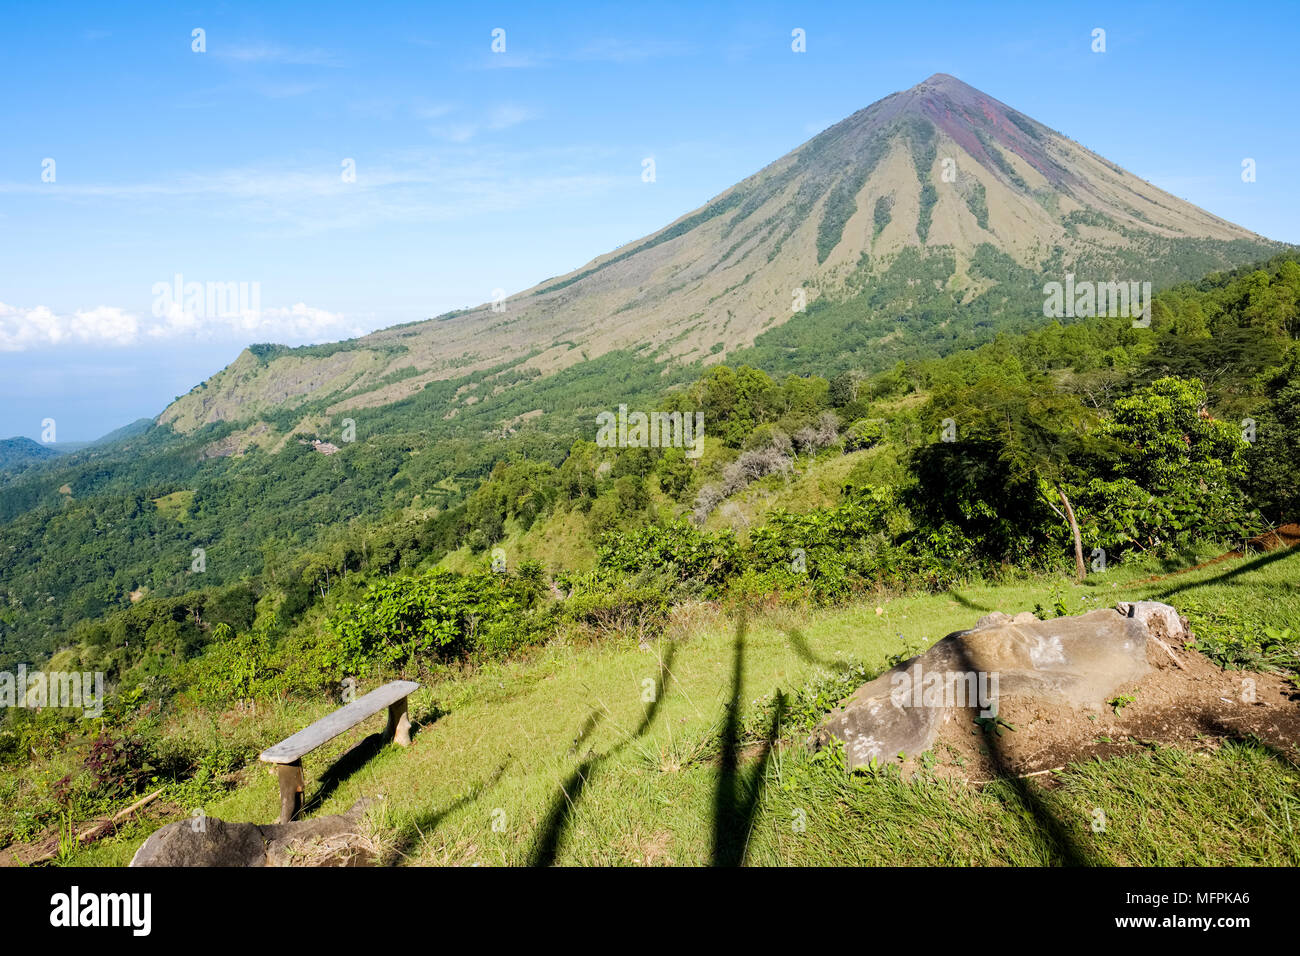 Mount Inerie (2,227 m), a volcano in the Bajawa district of Flores Island (East Nusa Tenggara), Indonesia. - Stock Image